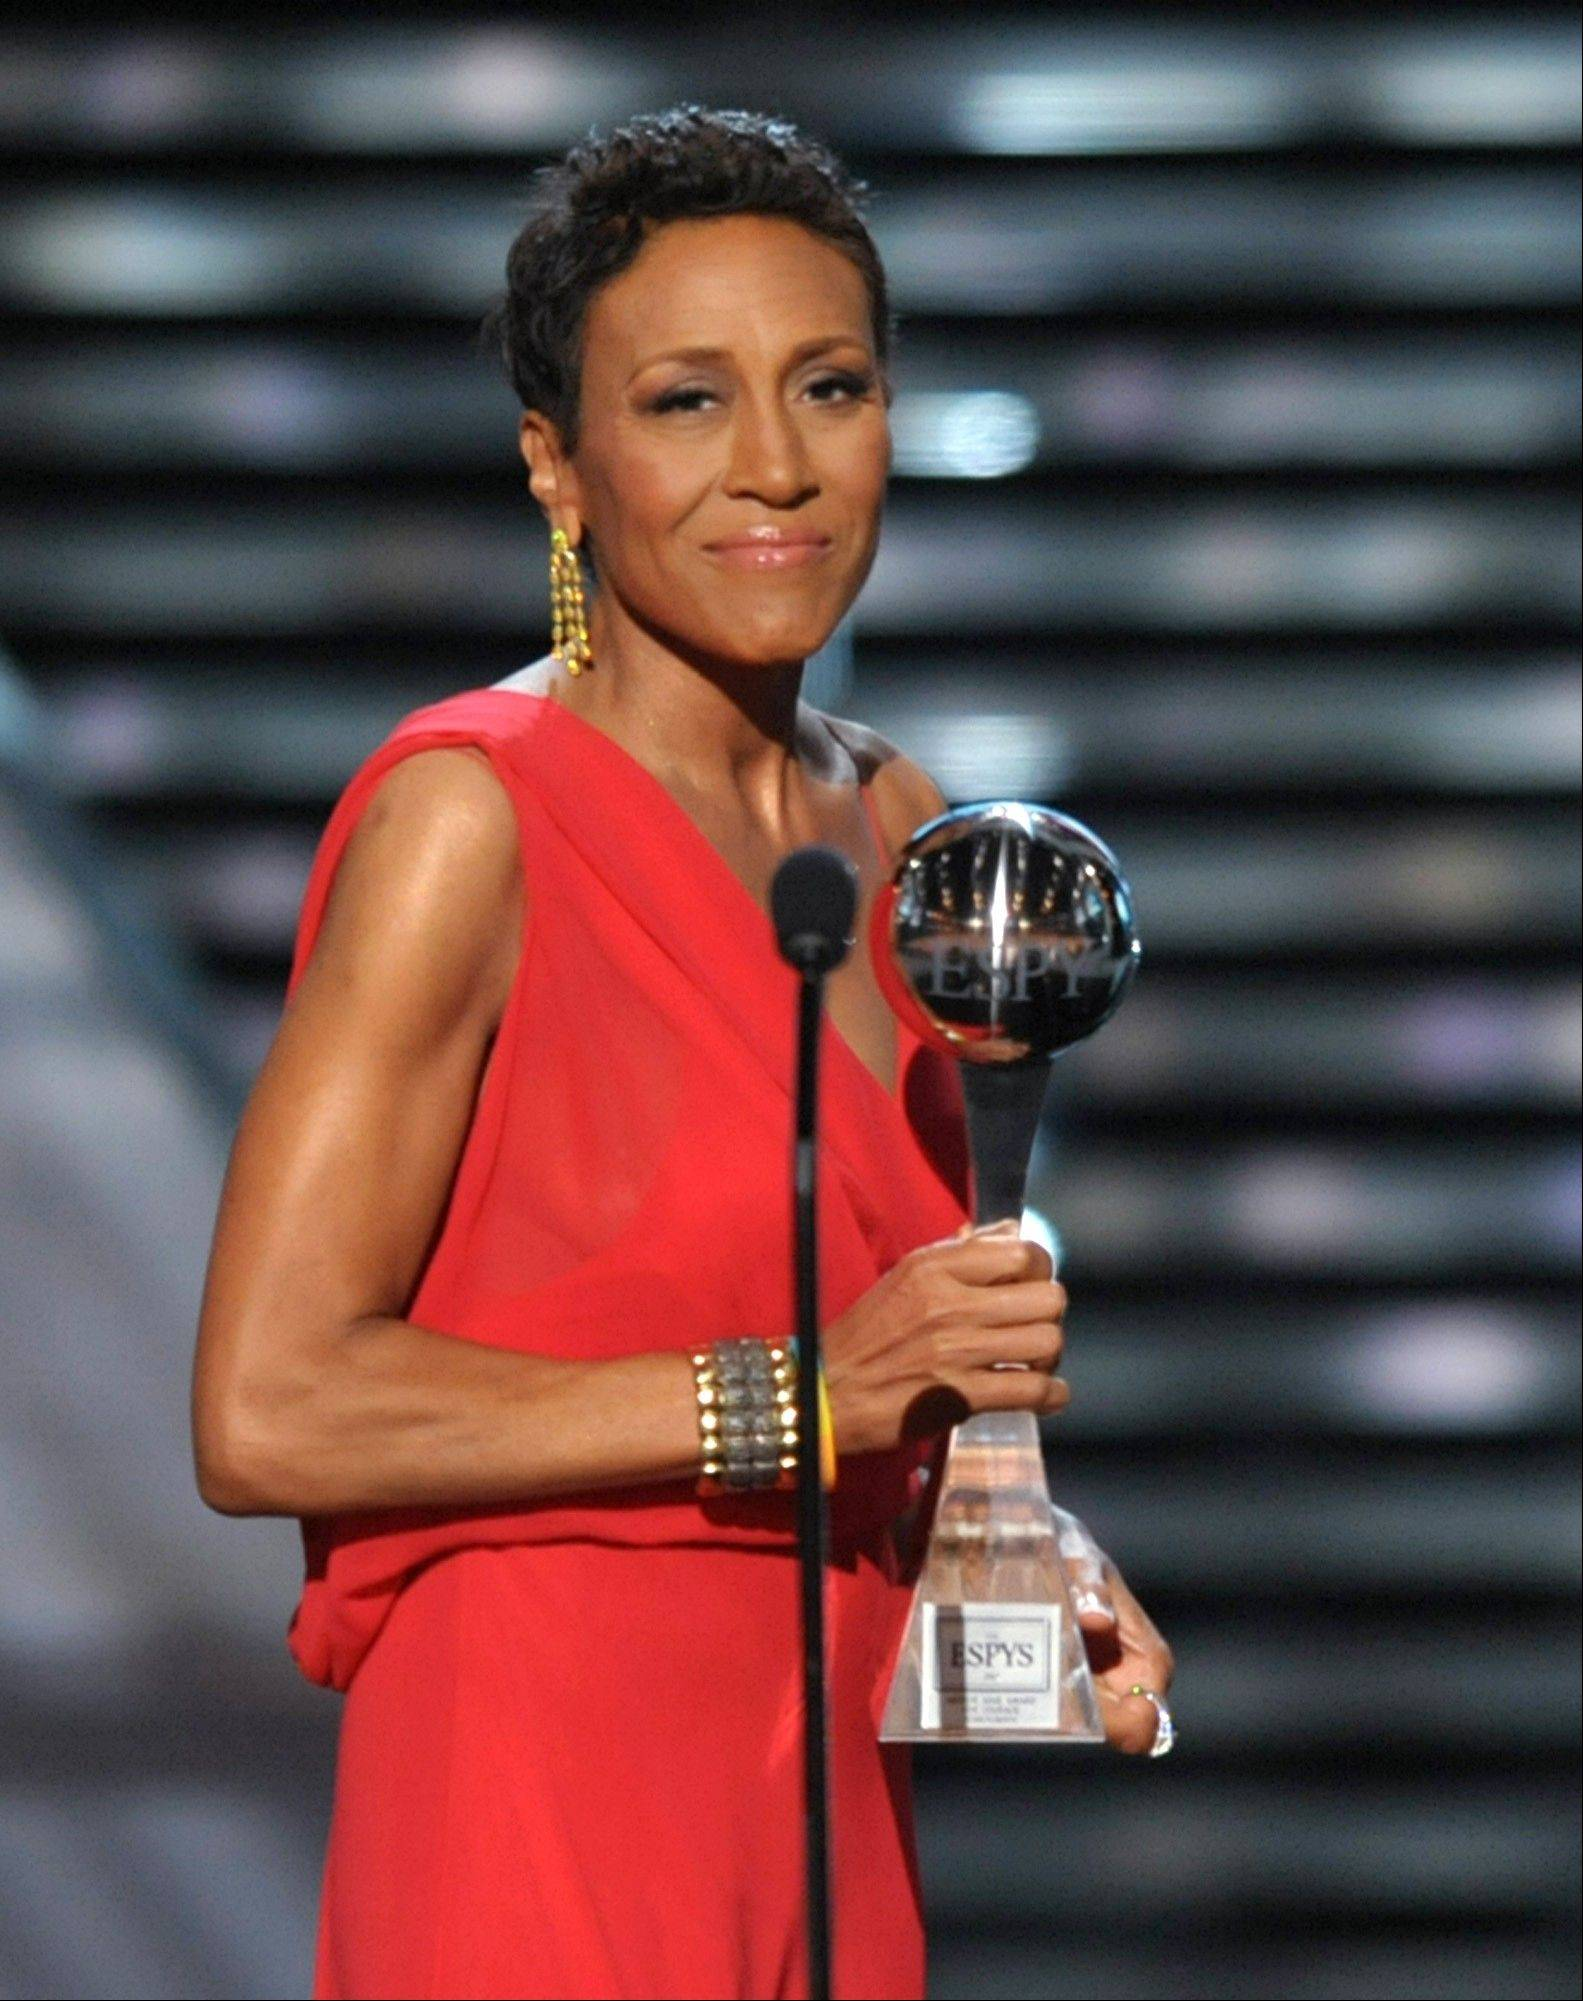 Television host Robin Roberts accepts the Arthur Ashe courage award at the ESPY Awards Wednesday night at the Nokia Theater in Los Angeles.